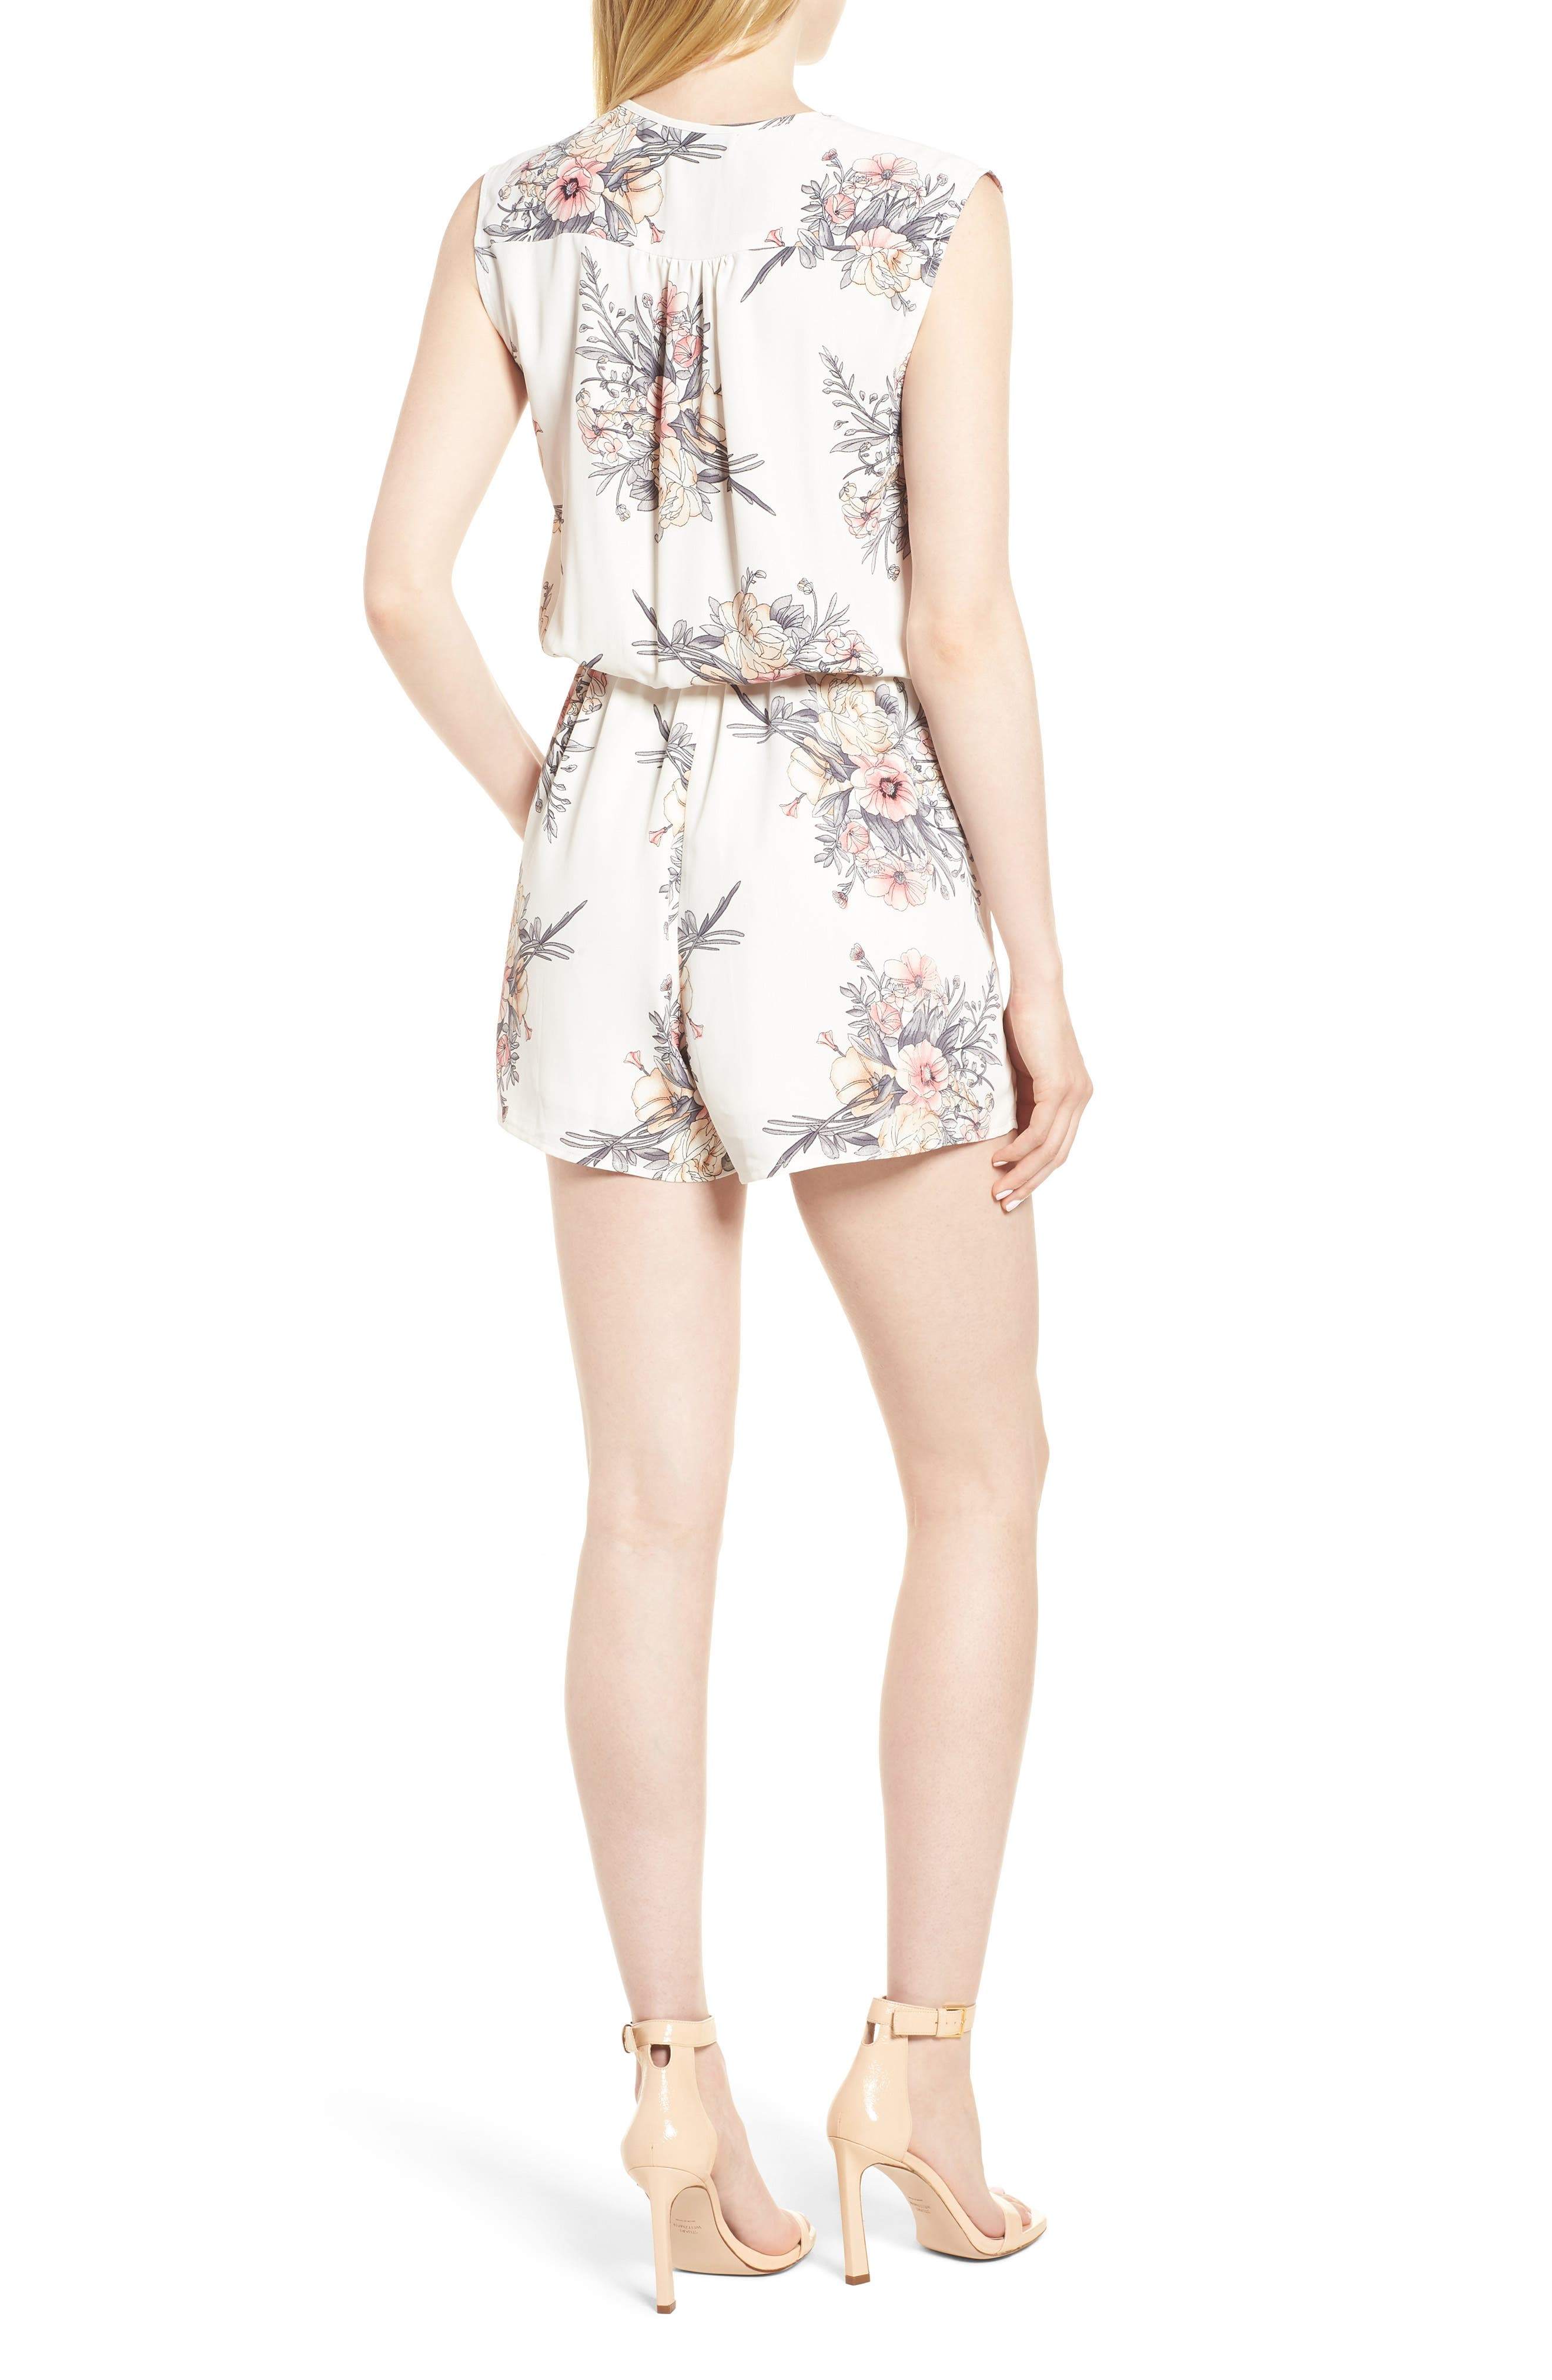 Bishop + Young Summer of Love Romper,                             Alternate thumbnail 2, color,                             Summer Of Love Print